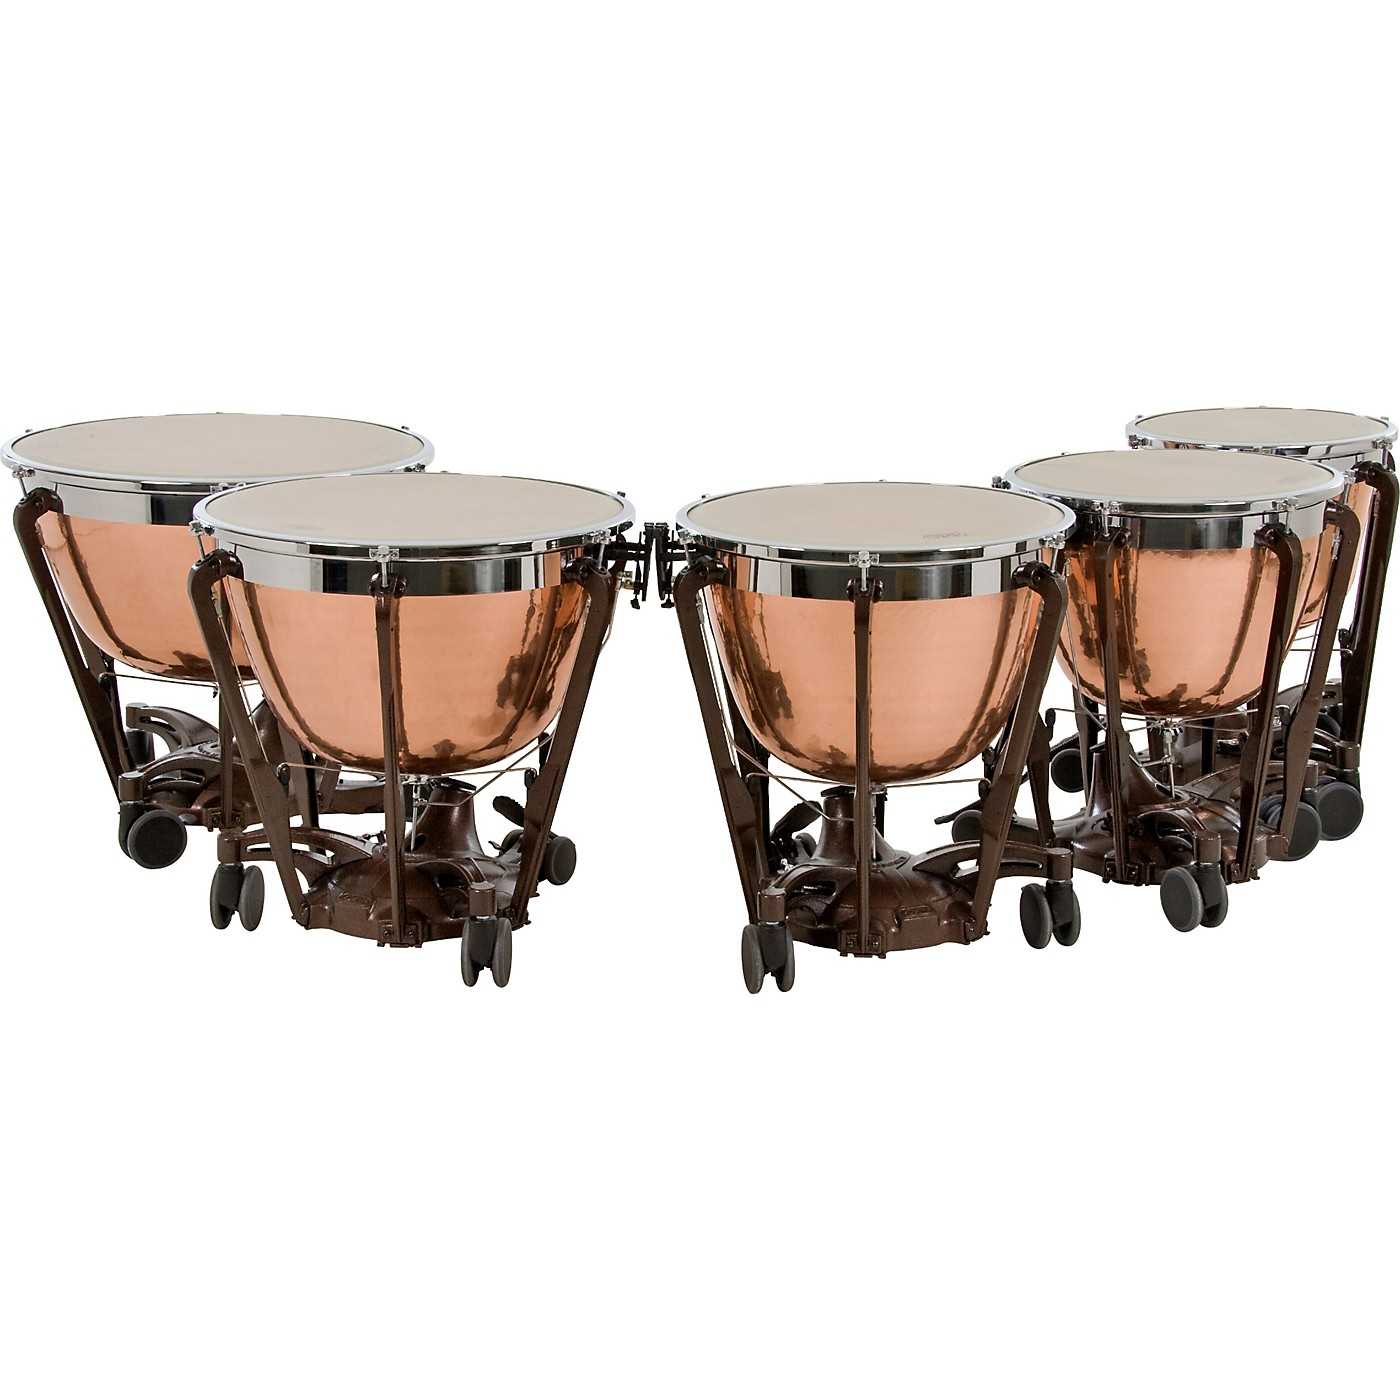 Adams Professional Series Generation II Hammered Cambered Copper Timpani thumbnail